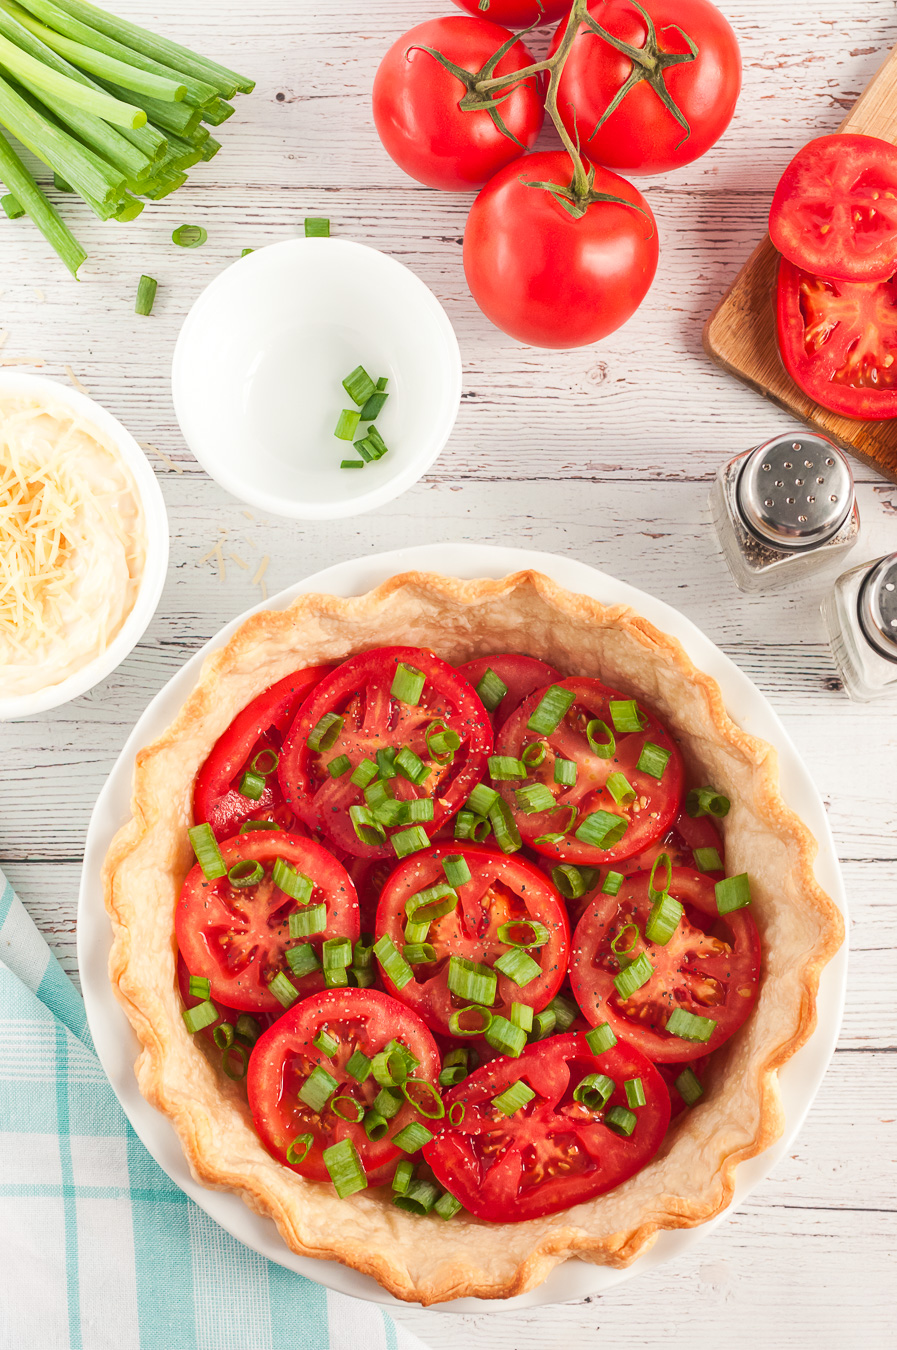 green onions being added to a tomato pie